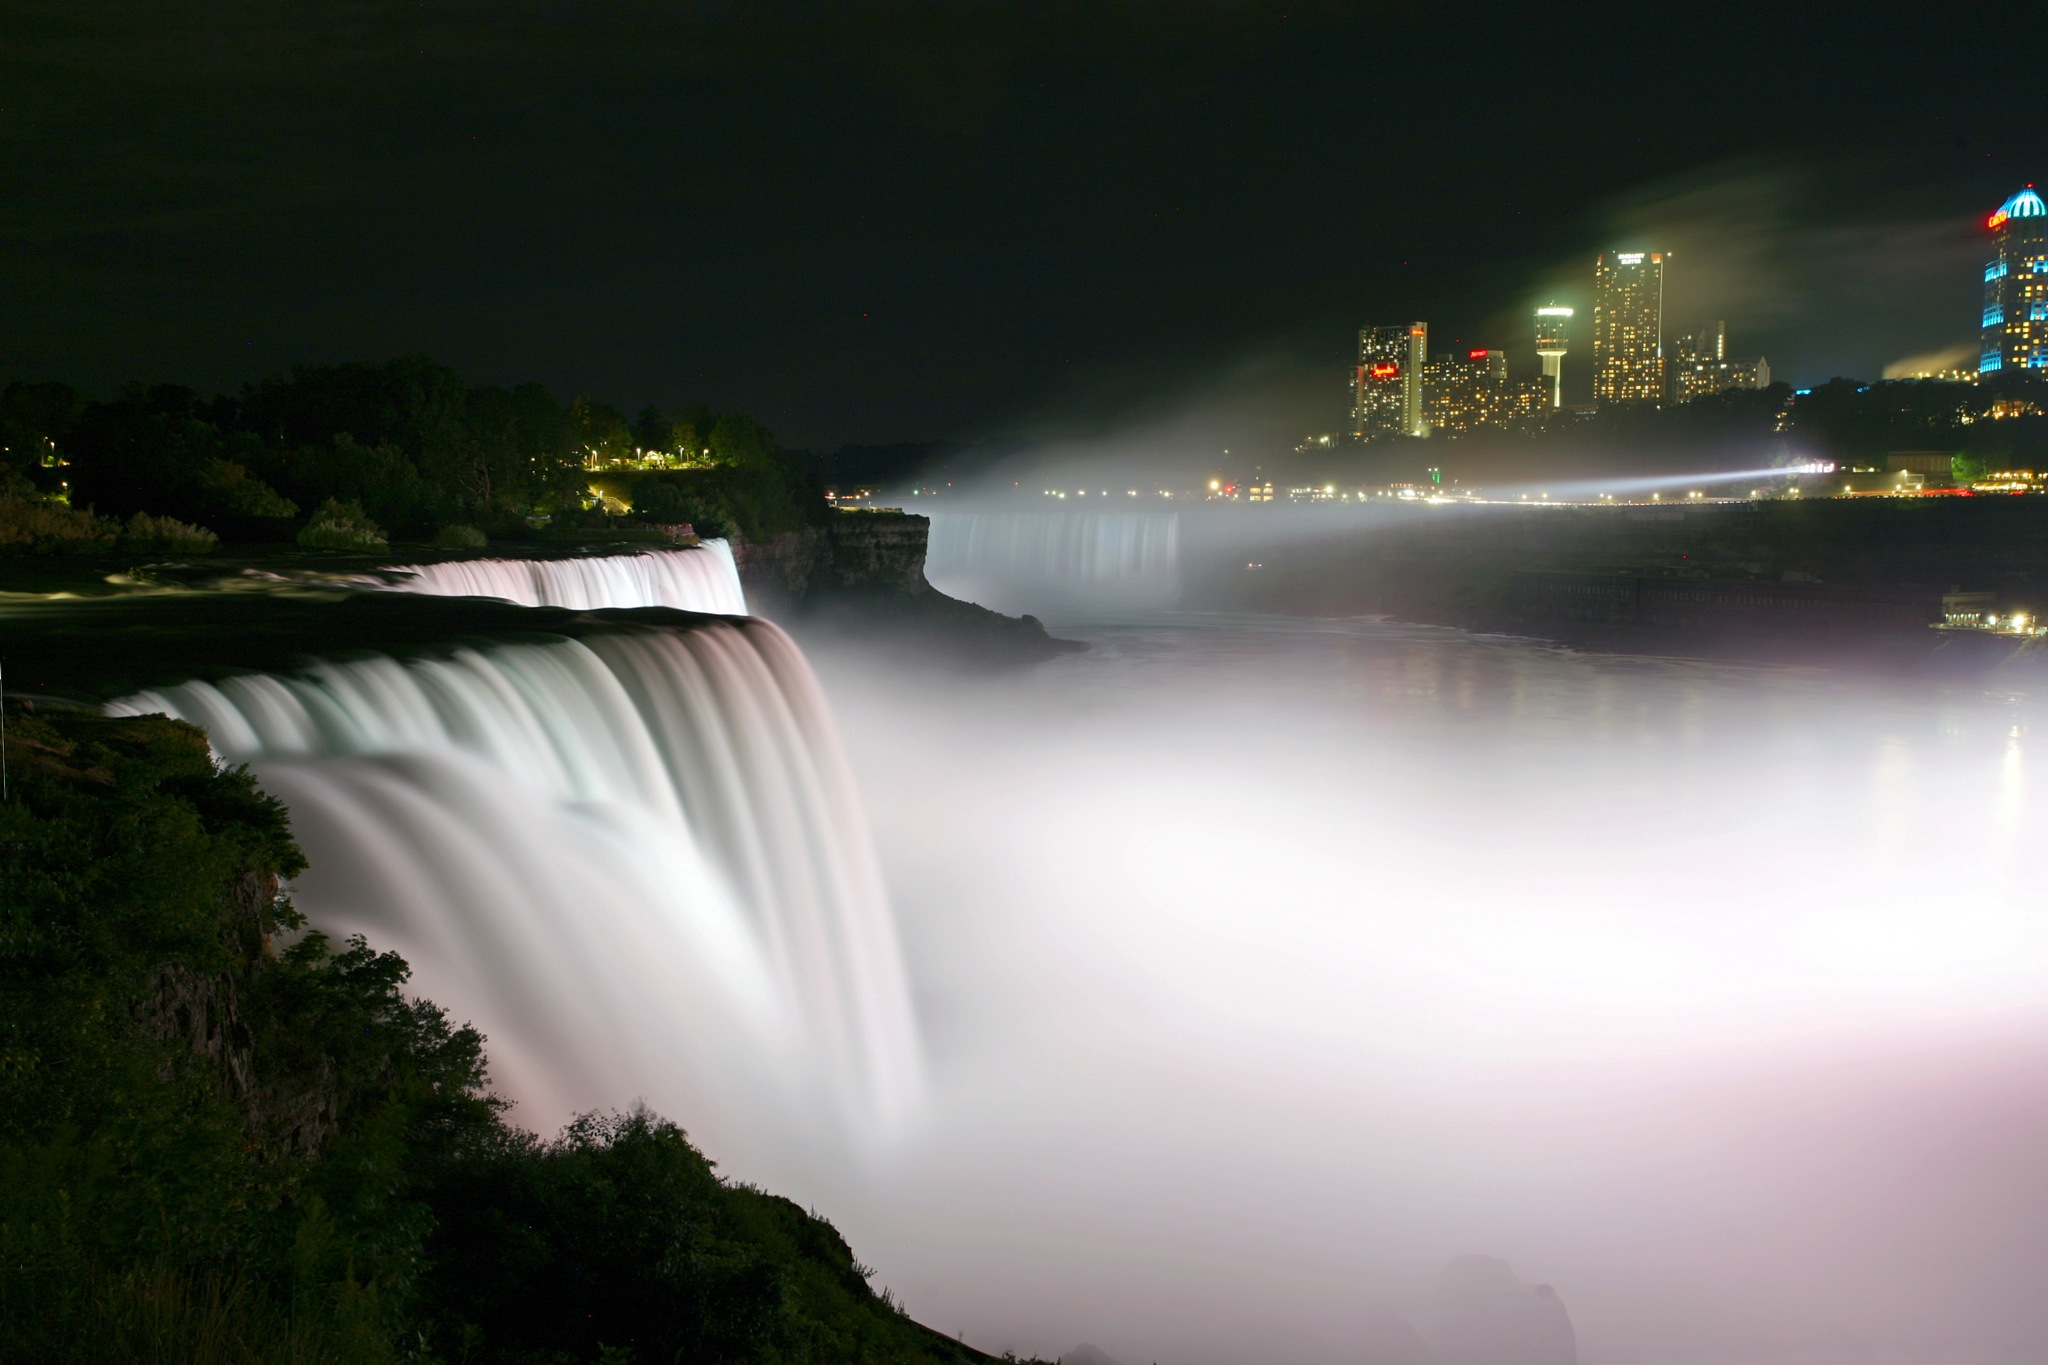 Nightime Mist of Niagara Falls by Gene Walls